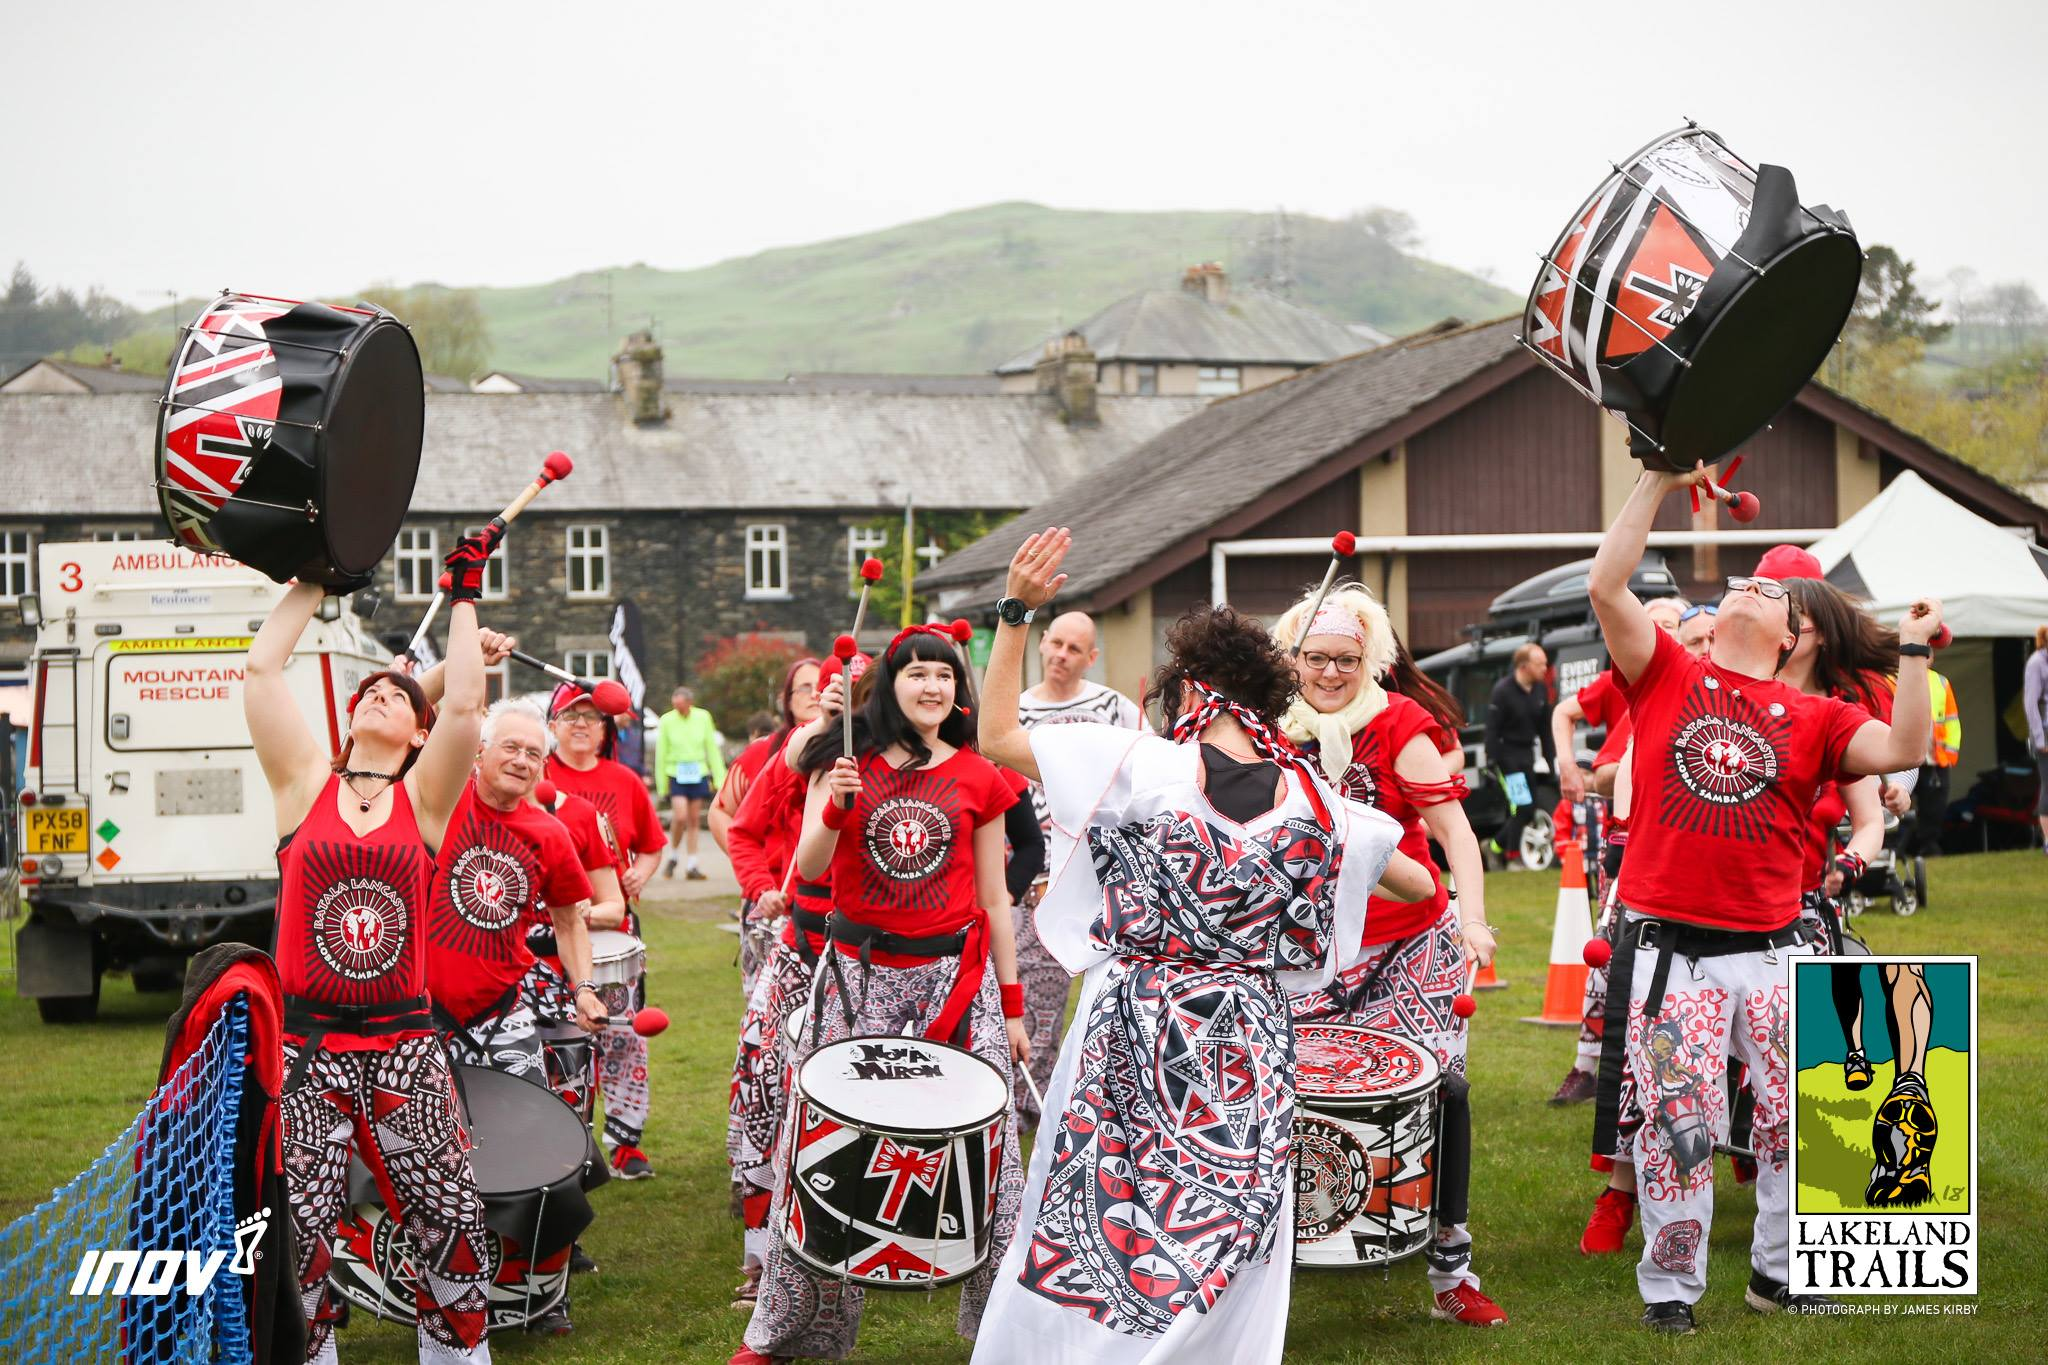 Batala Lancaster drumming band at Lakeland Trails Stavely